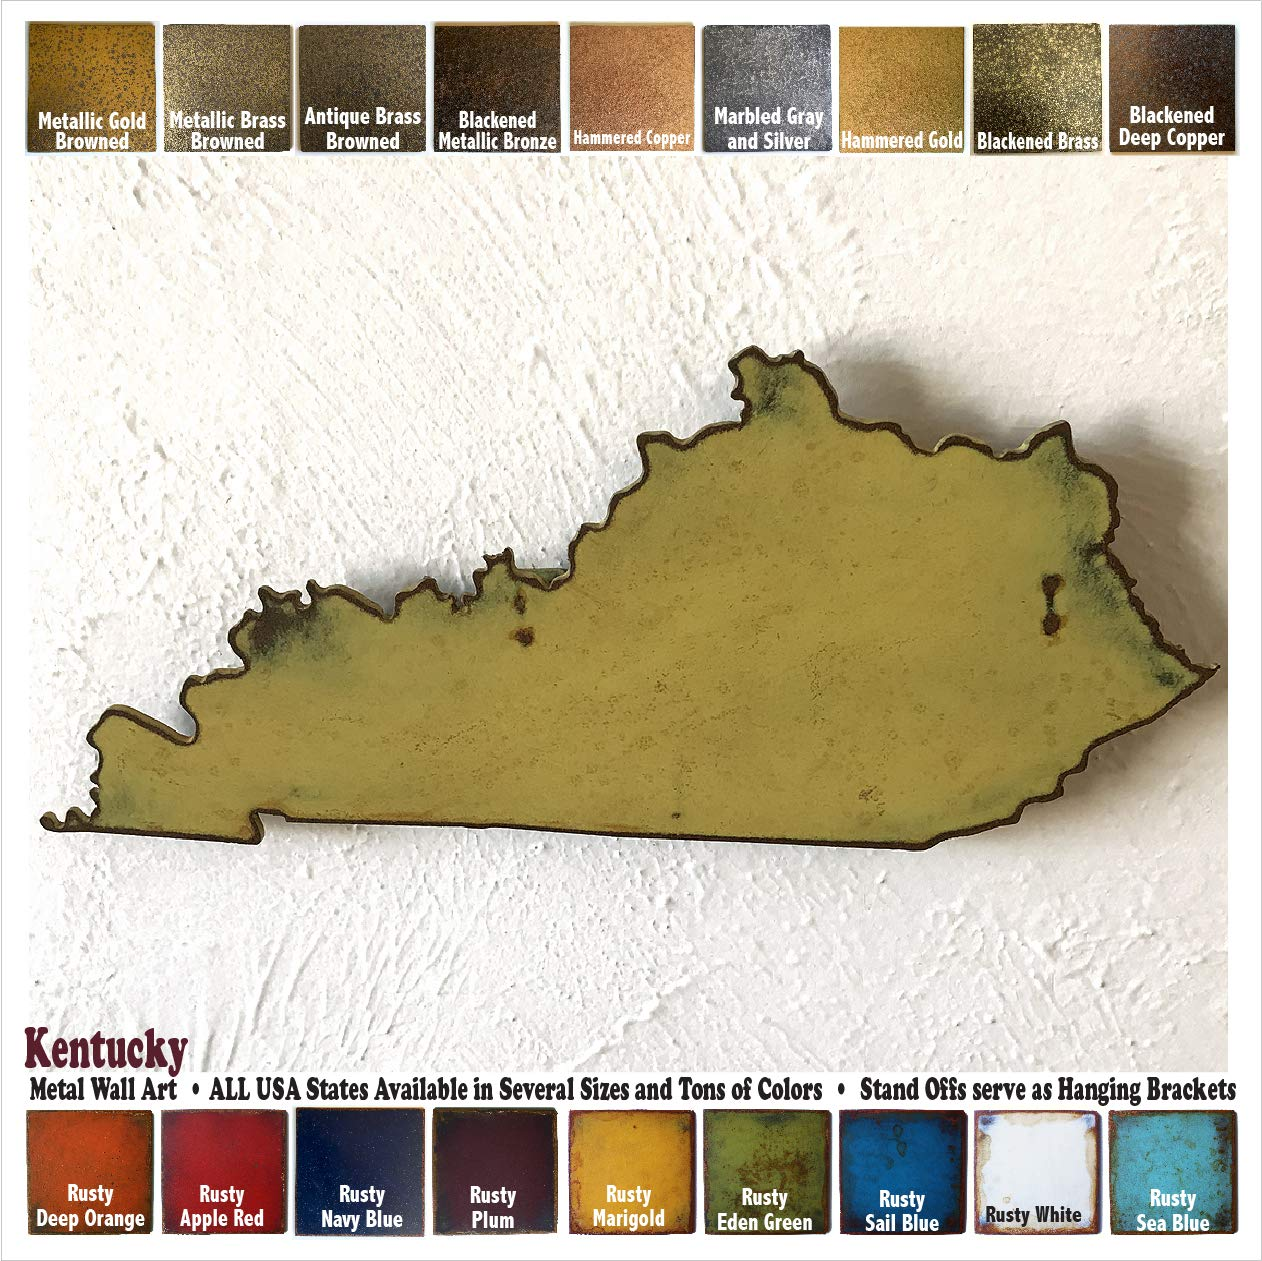 Amazon.com: Kentucky metal wall art - Choose 11\